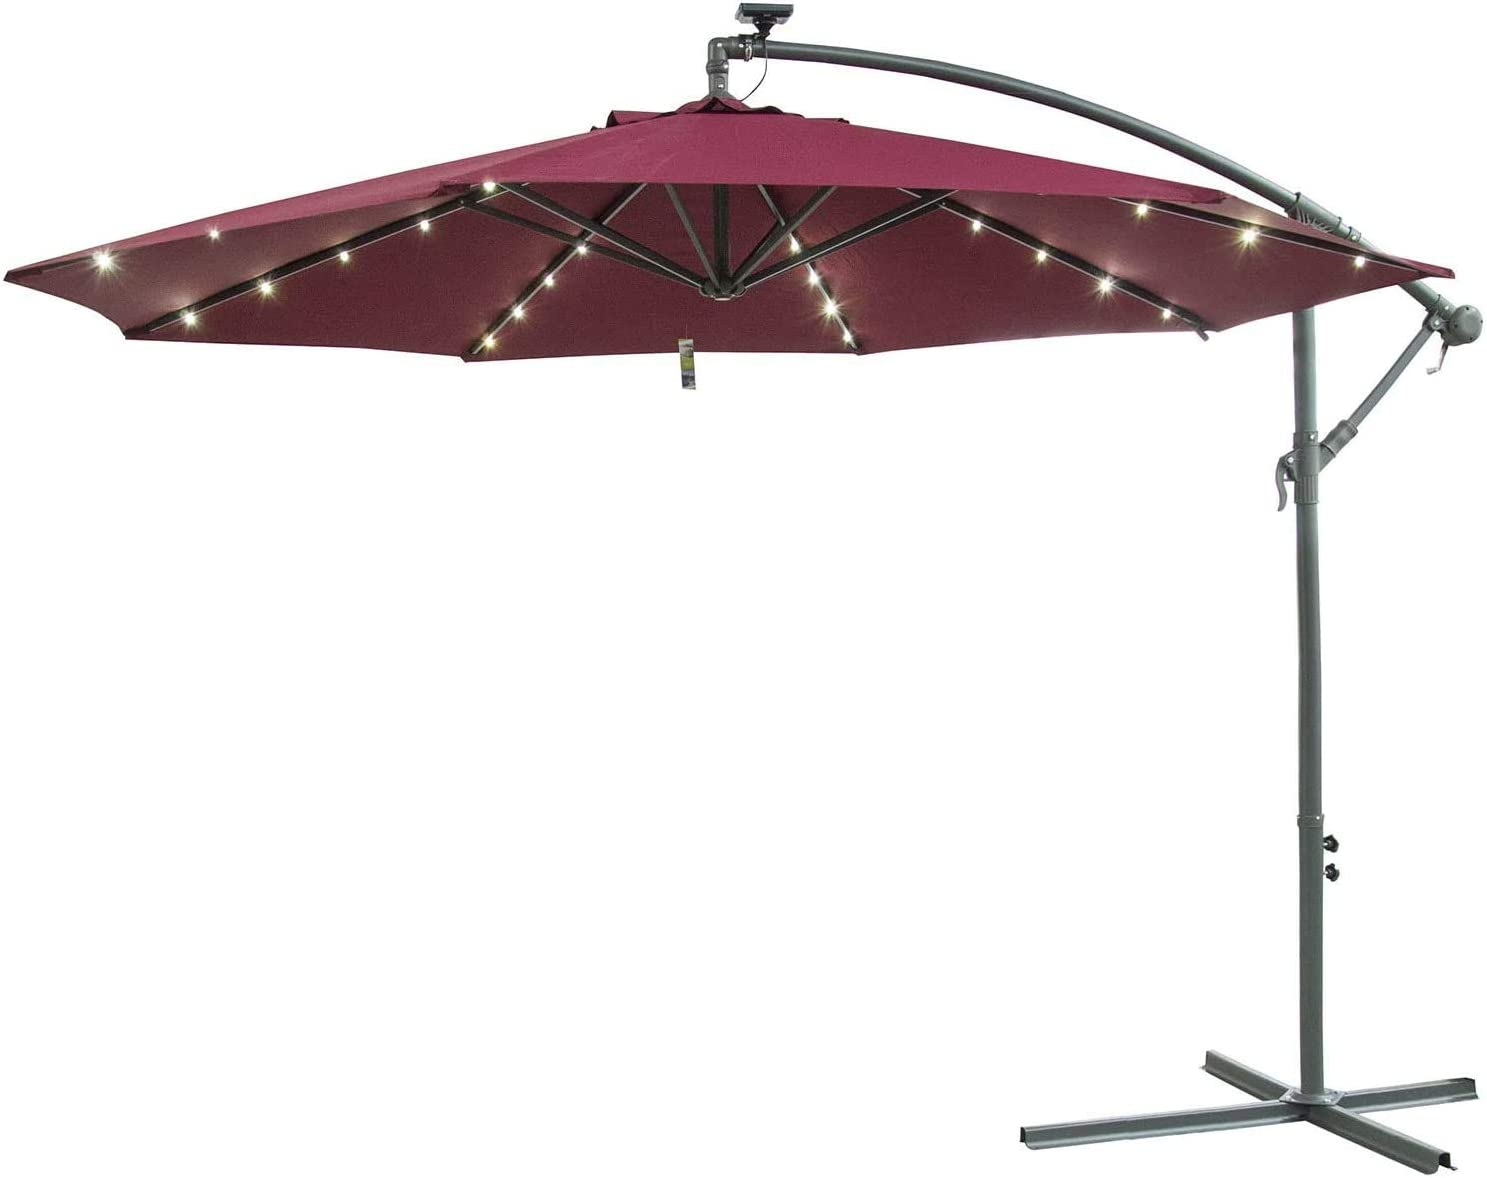 Caymus 10' Offset Cantilever Hanging Patio Umbrella Freestanding Outdoor Adjustable Market Umbrella